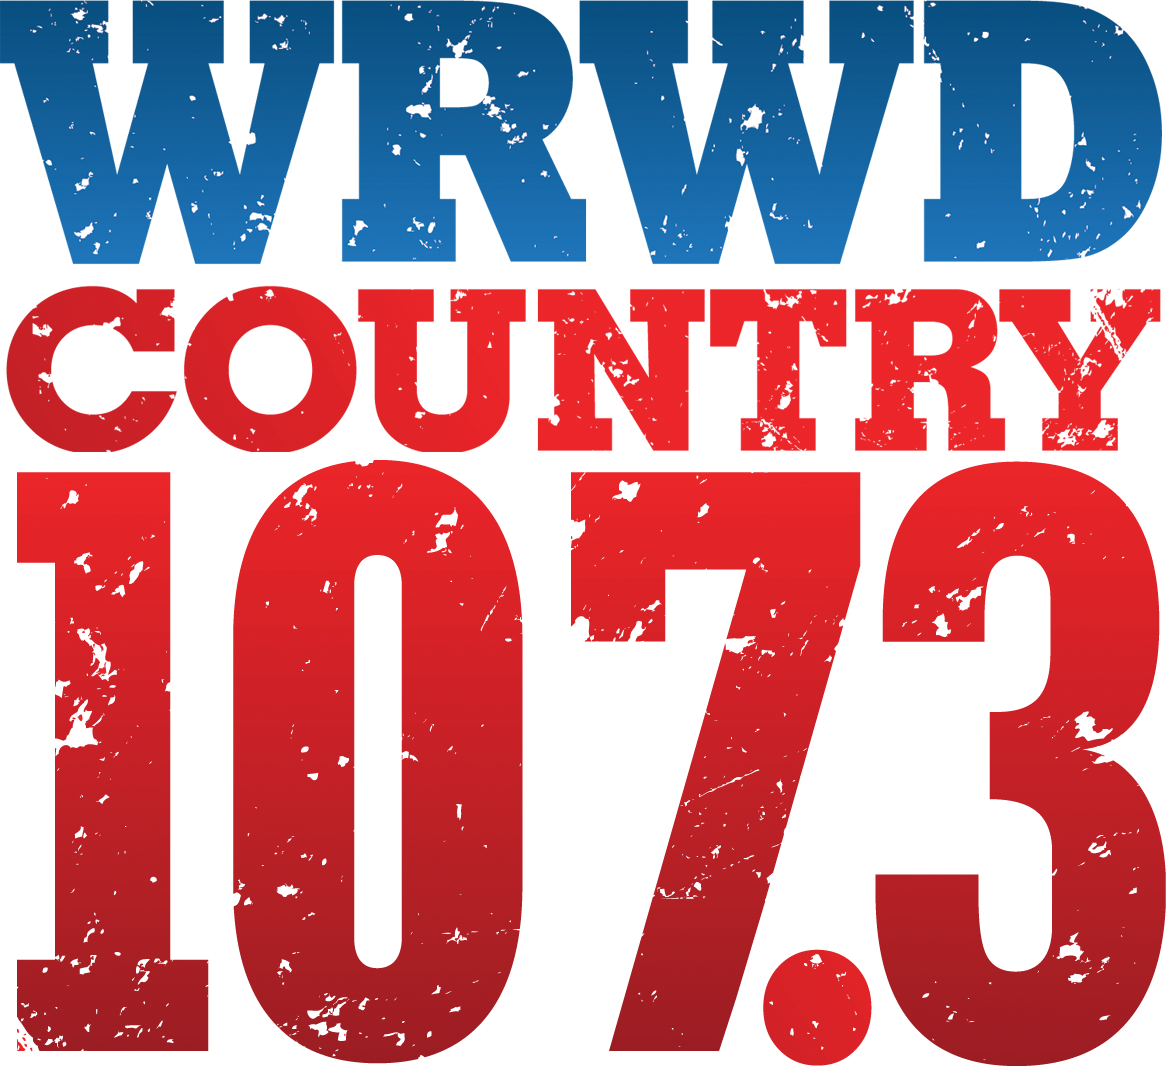 107.3 WRWD